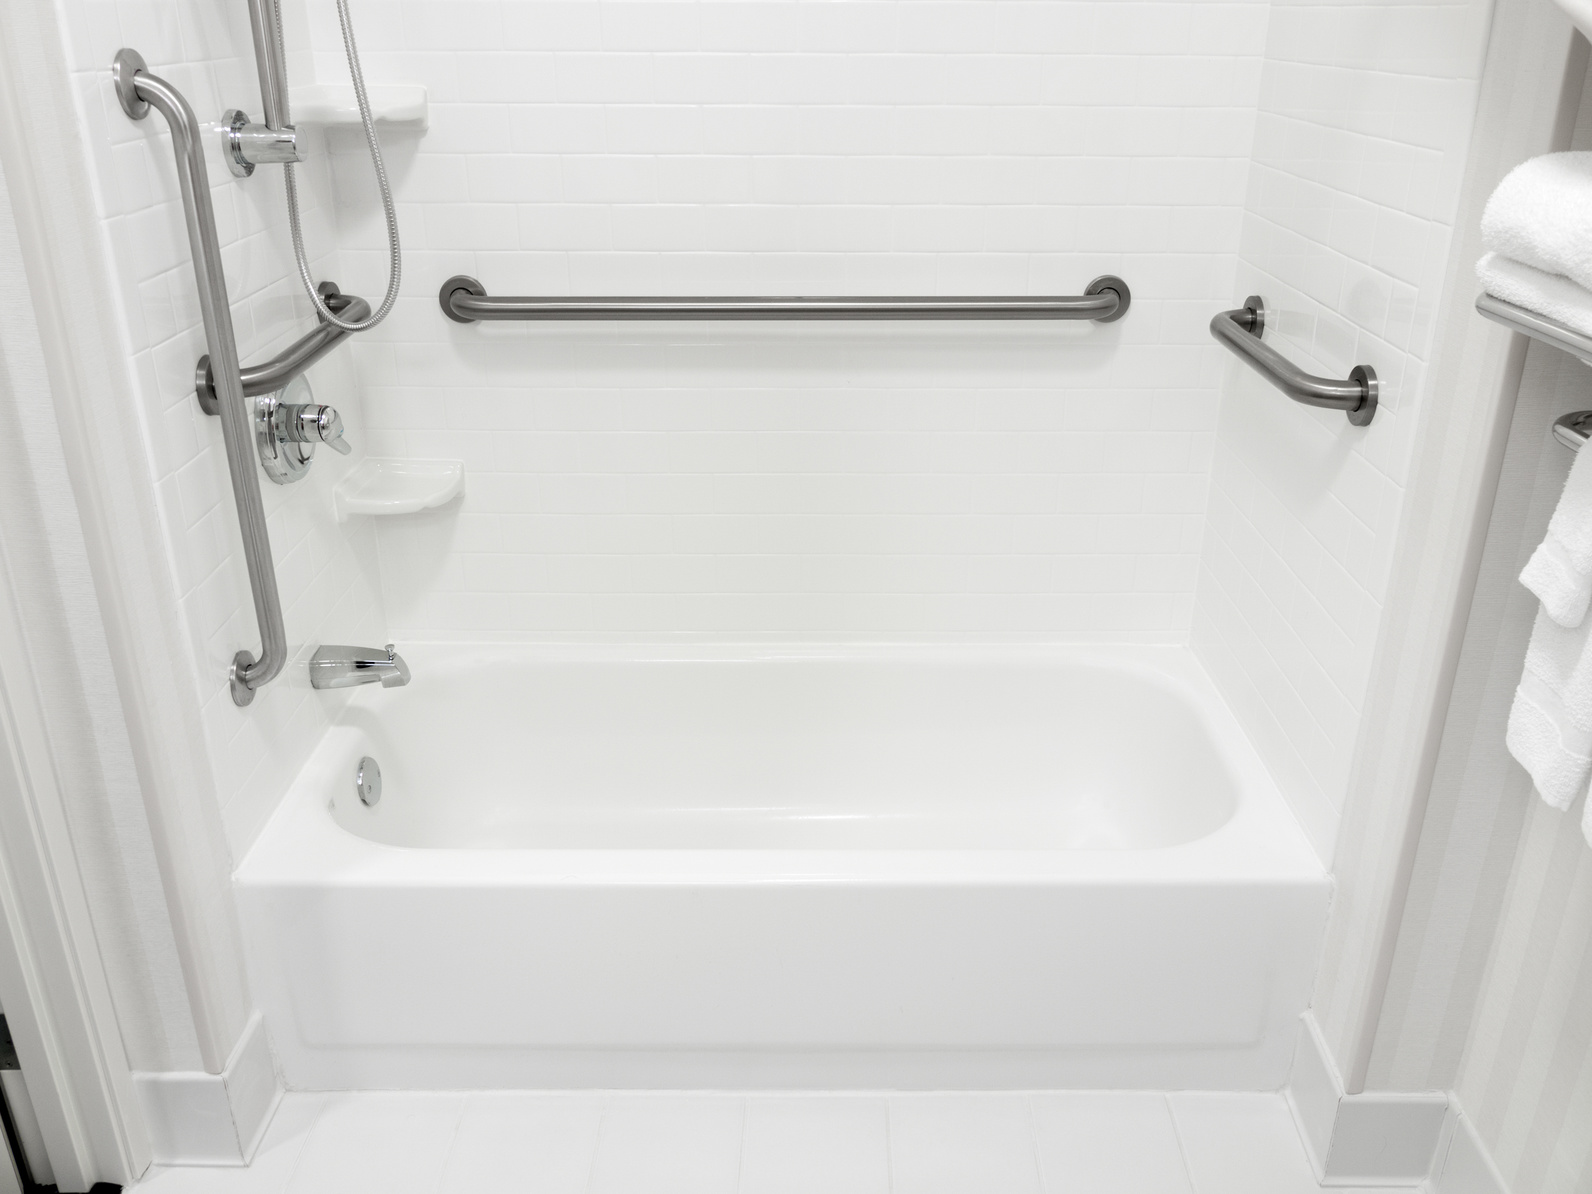 Bath Safety - Pro Air